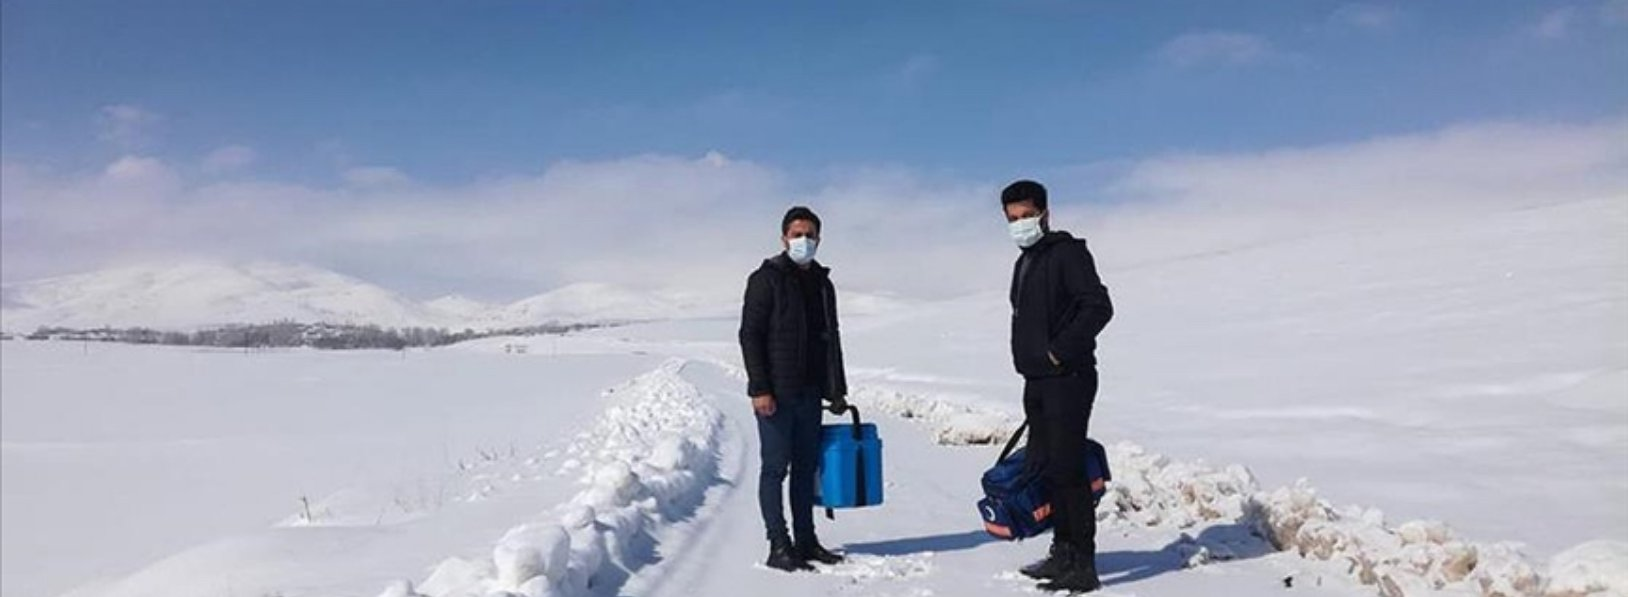 Despite the harsh winter conditions, vaccination continues in Van